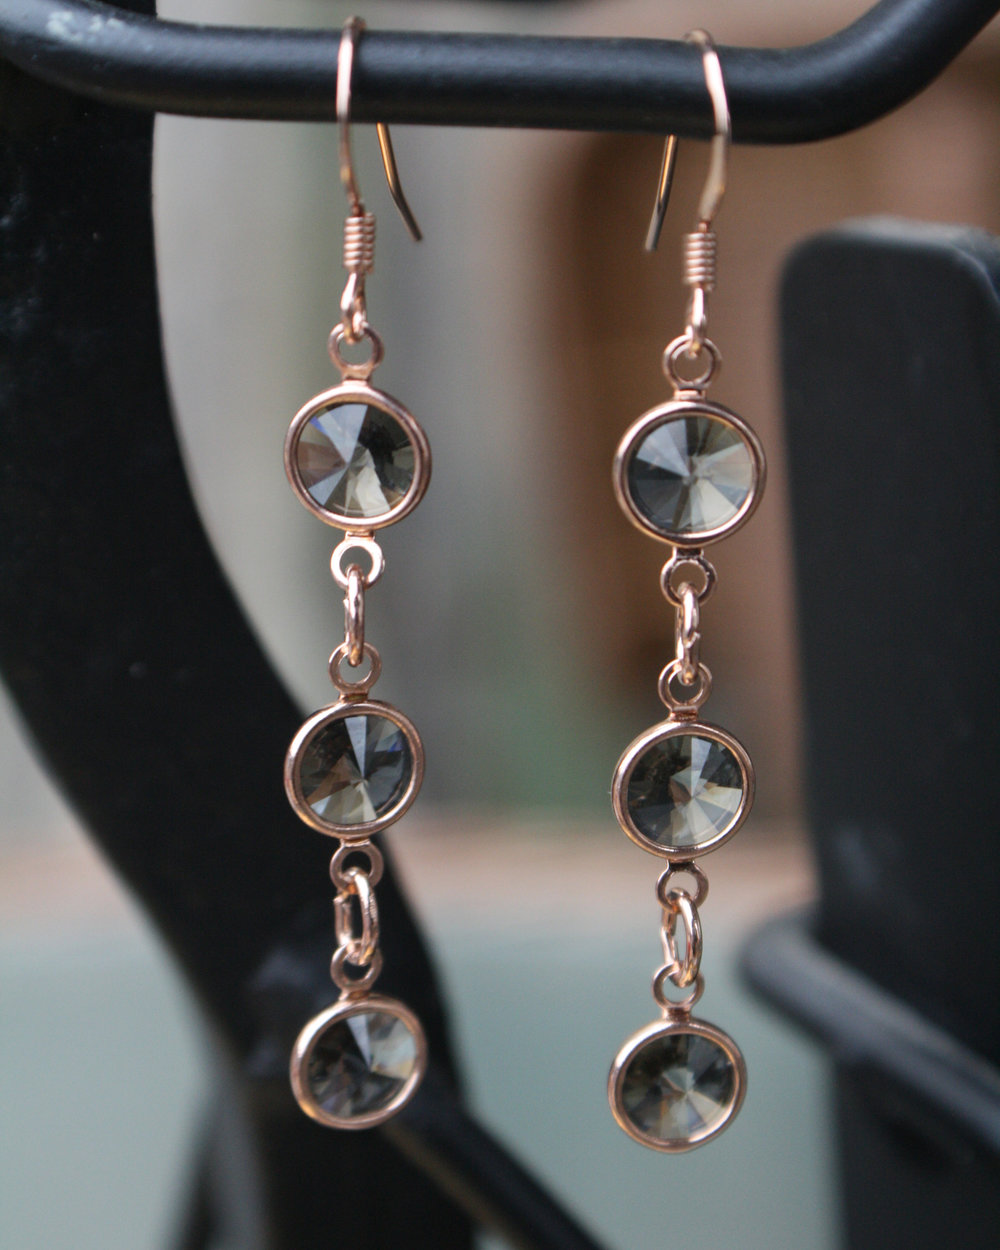 Midnight Madness Rose Gold Crystal Black Swarovski Earrings_14 copy copy.jpg